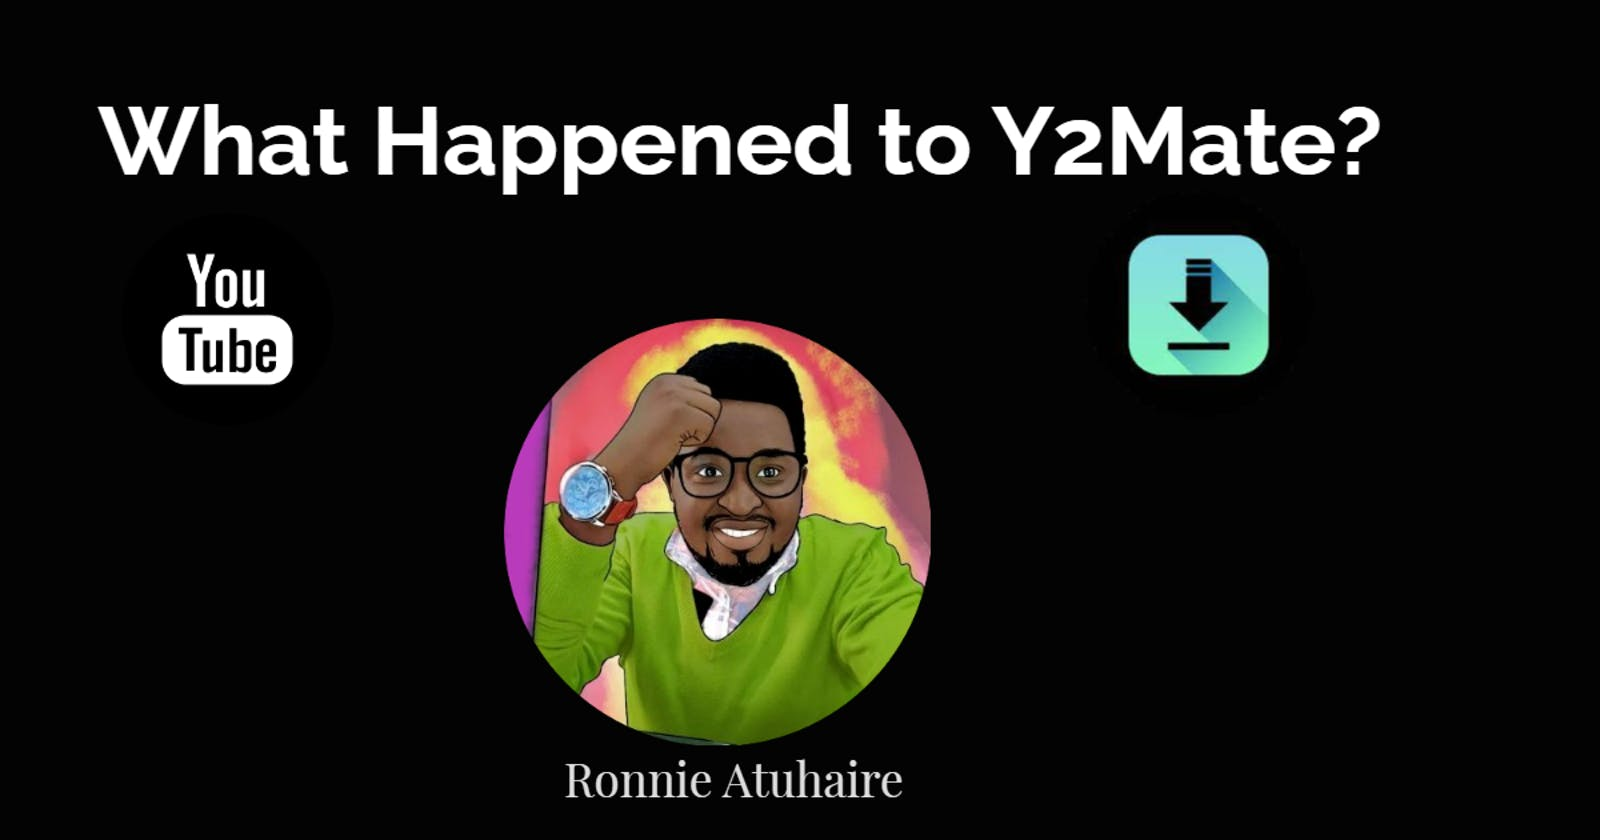 What Happened To Y2Mate?